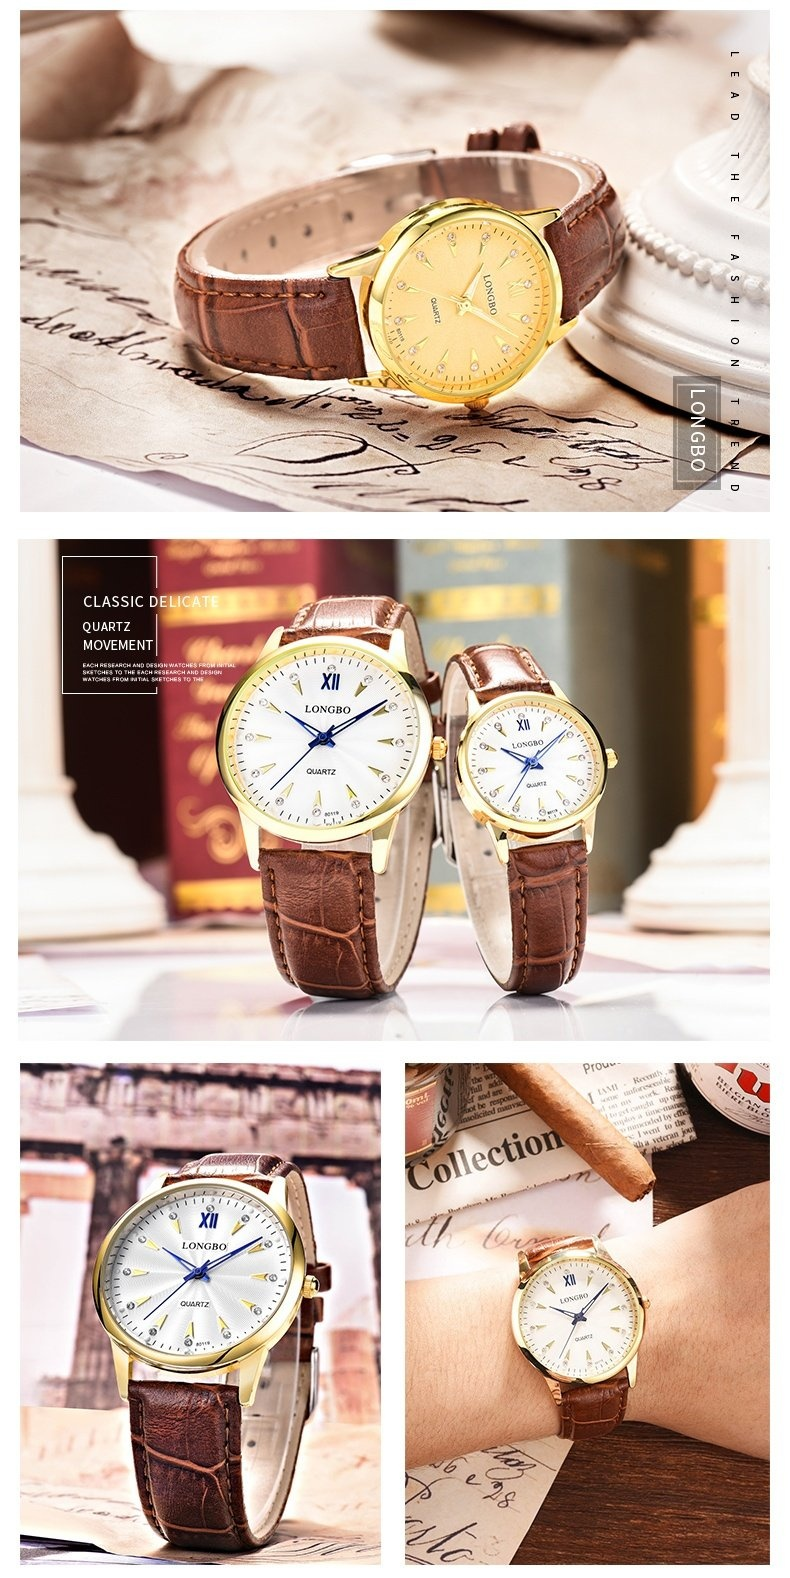 Dial Men s Watch Jam Tangan Fashion Source · Inno Foto 2 Set .